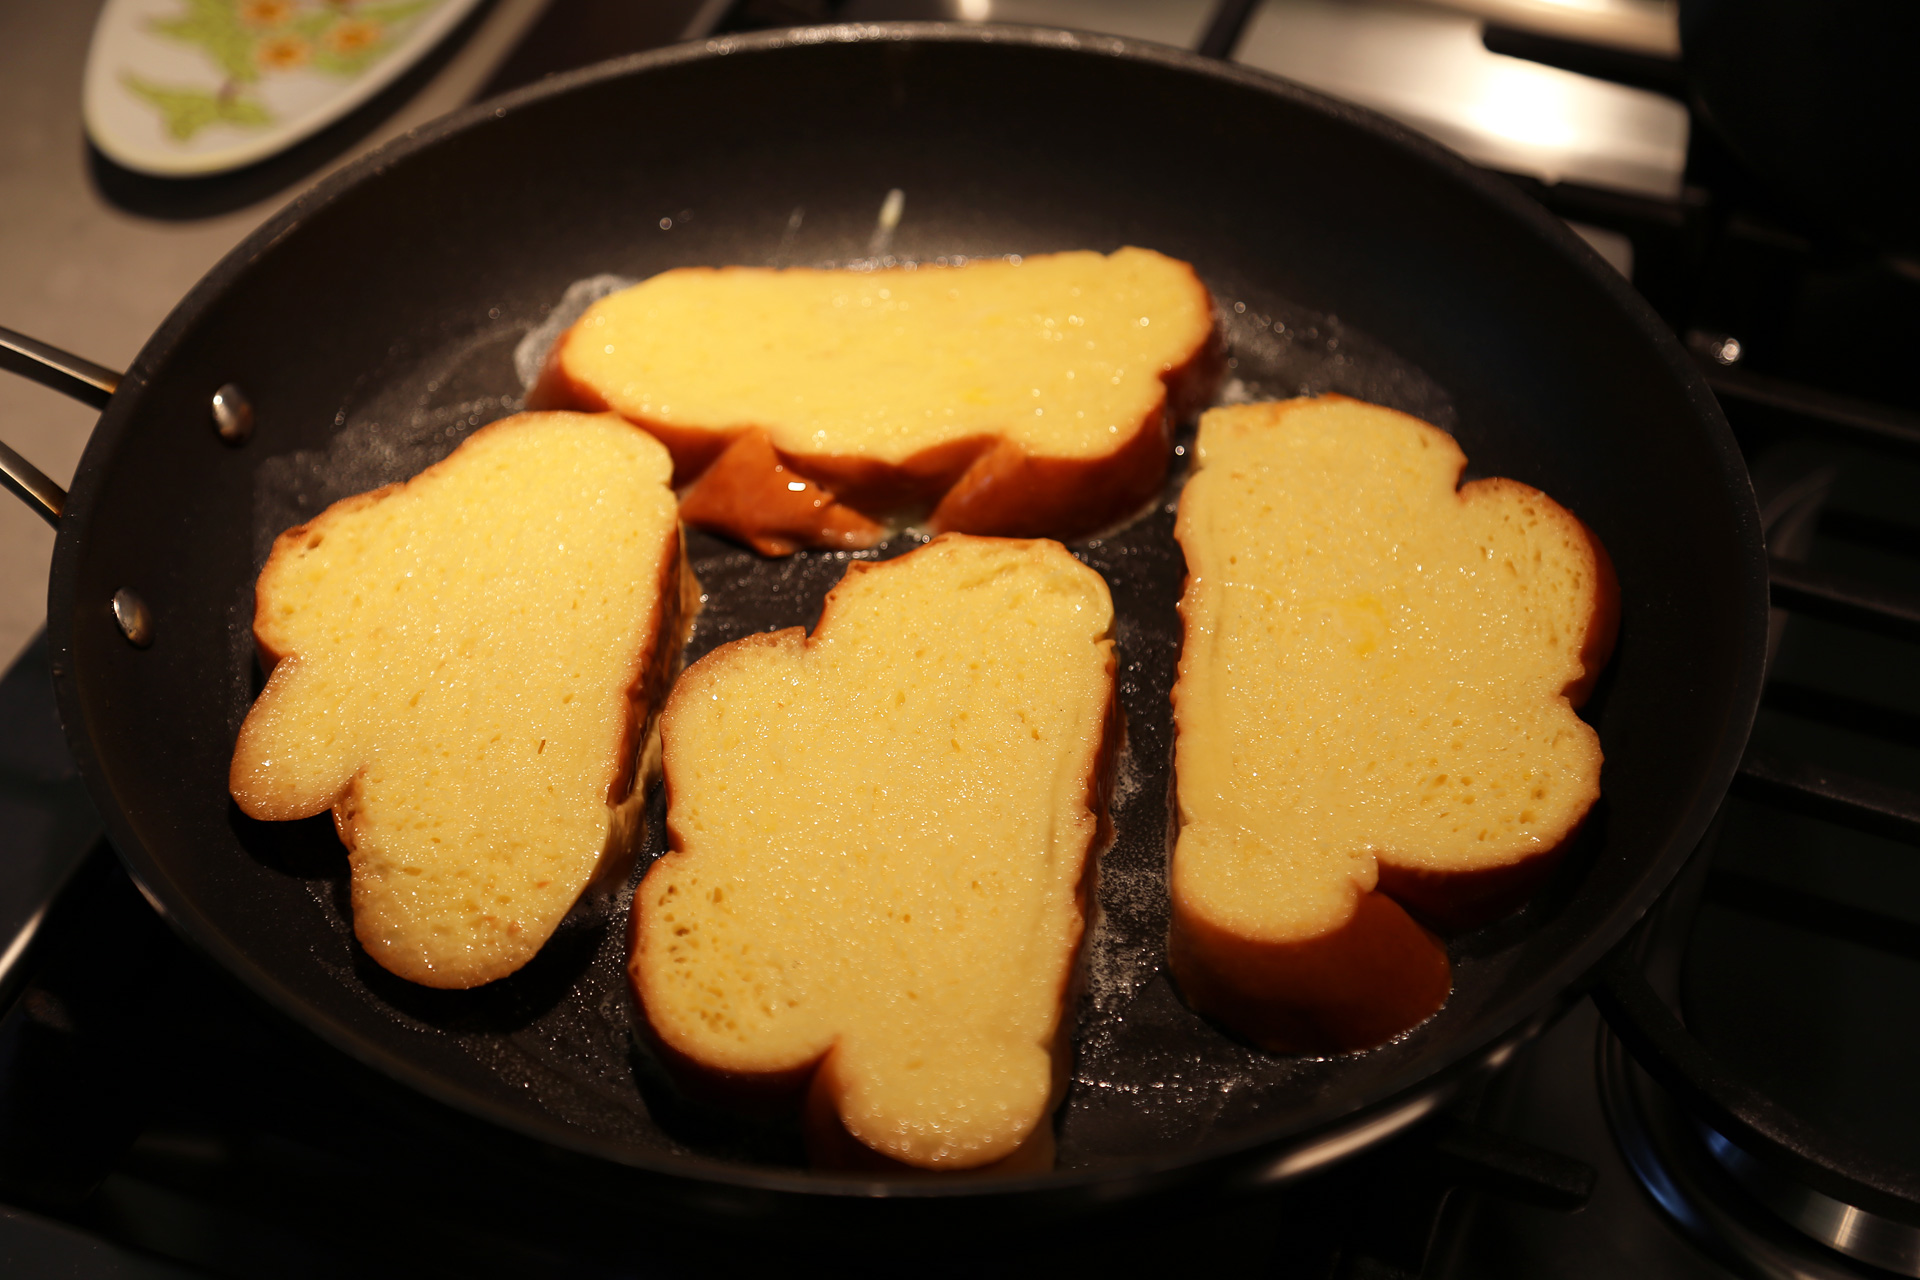 Add as many bread slices as you can easily fit into each pan or on the griddle.